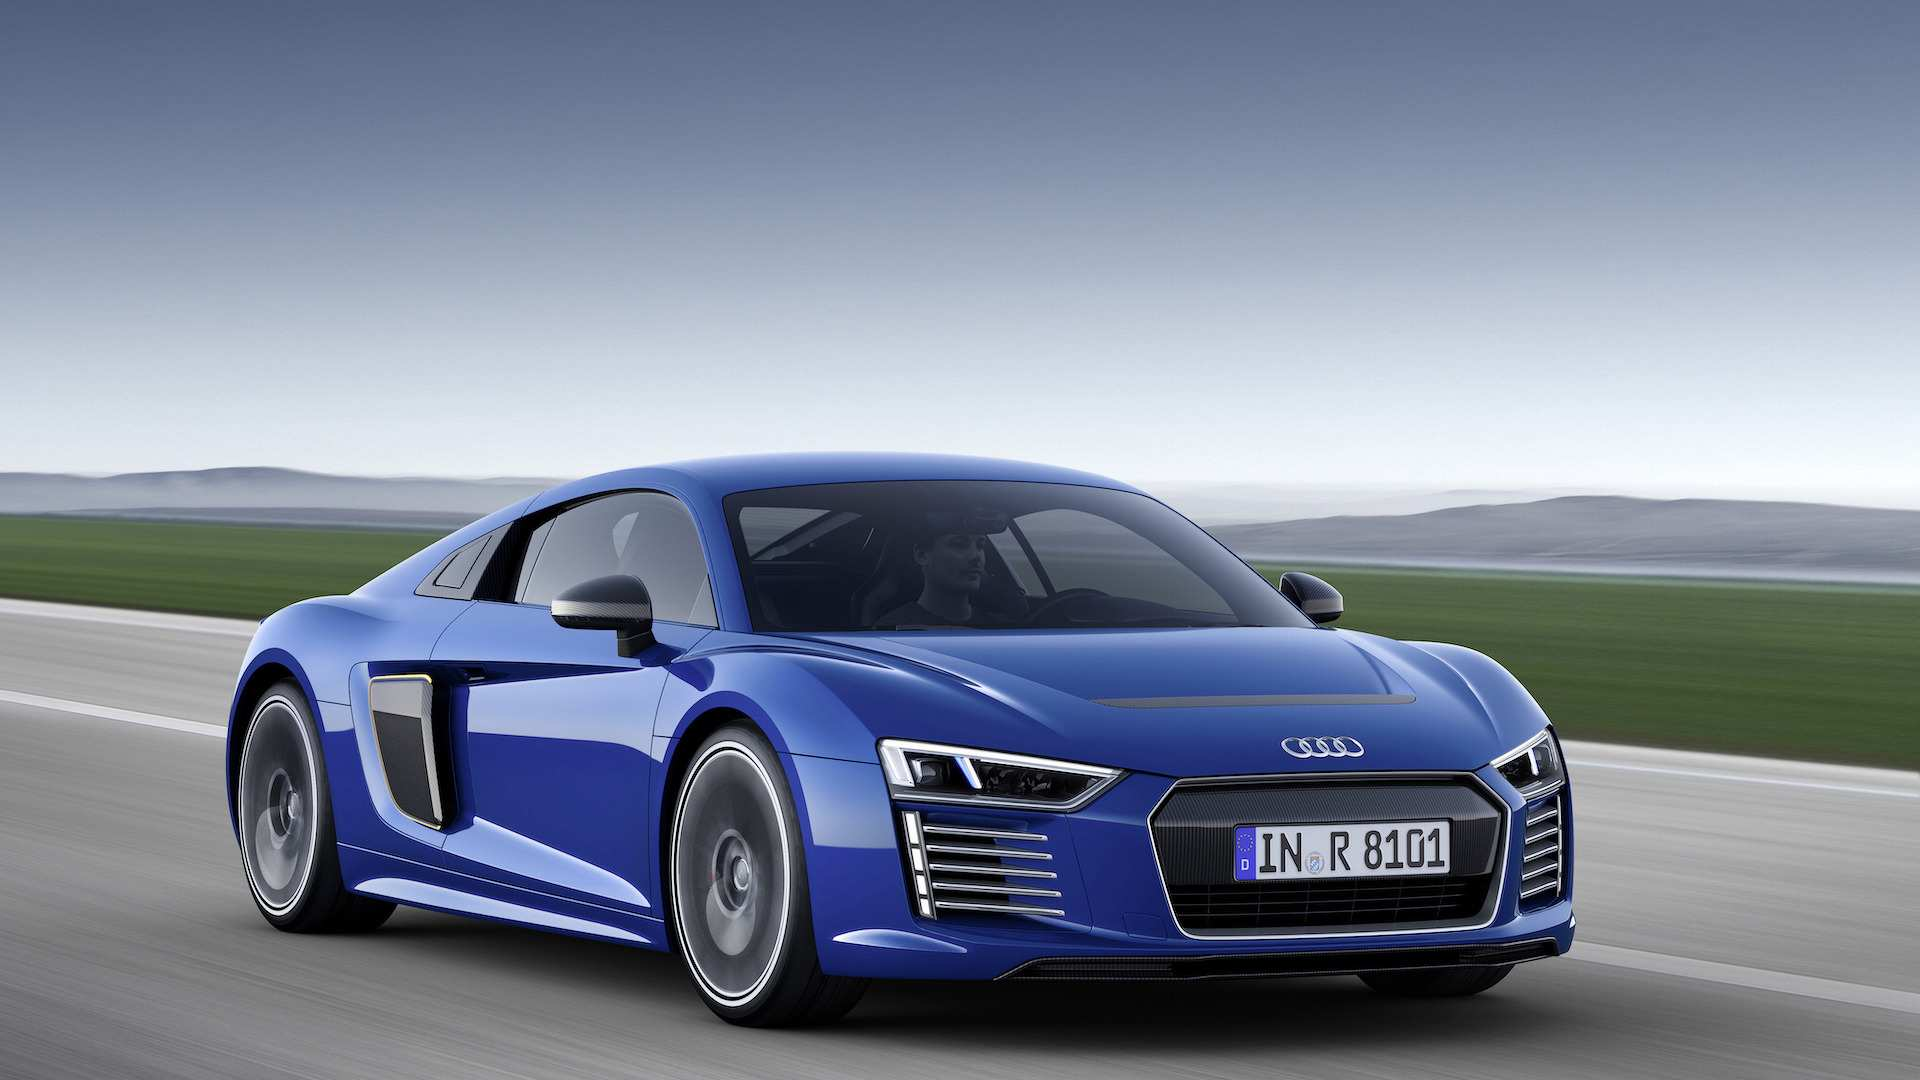 25 Gallery of 2020 Audi R8 E Tron Specs for 2020 Audi R8 E Tron